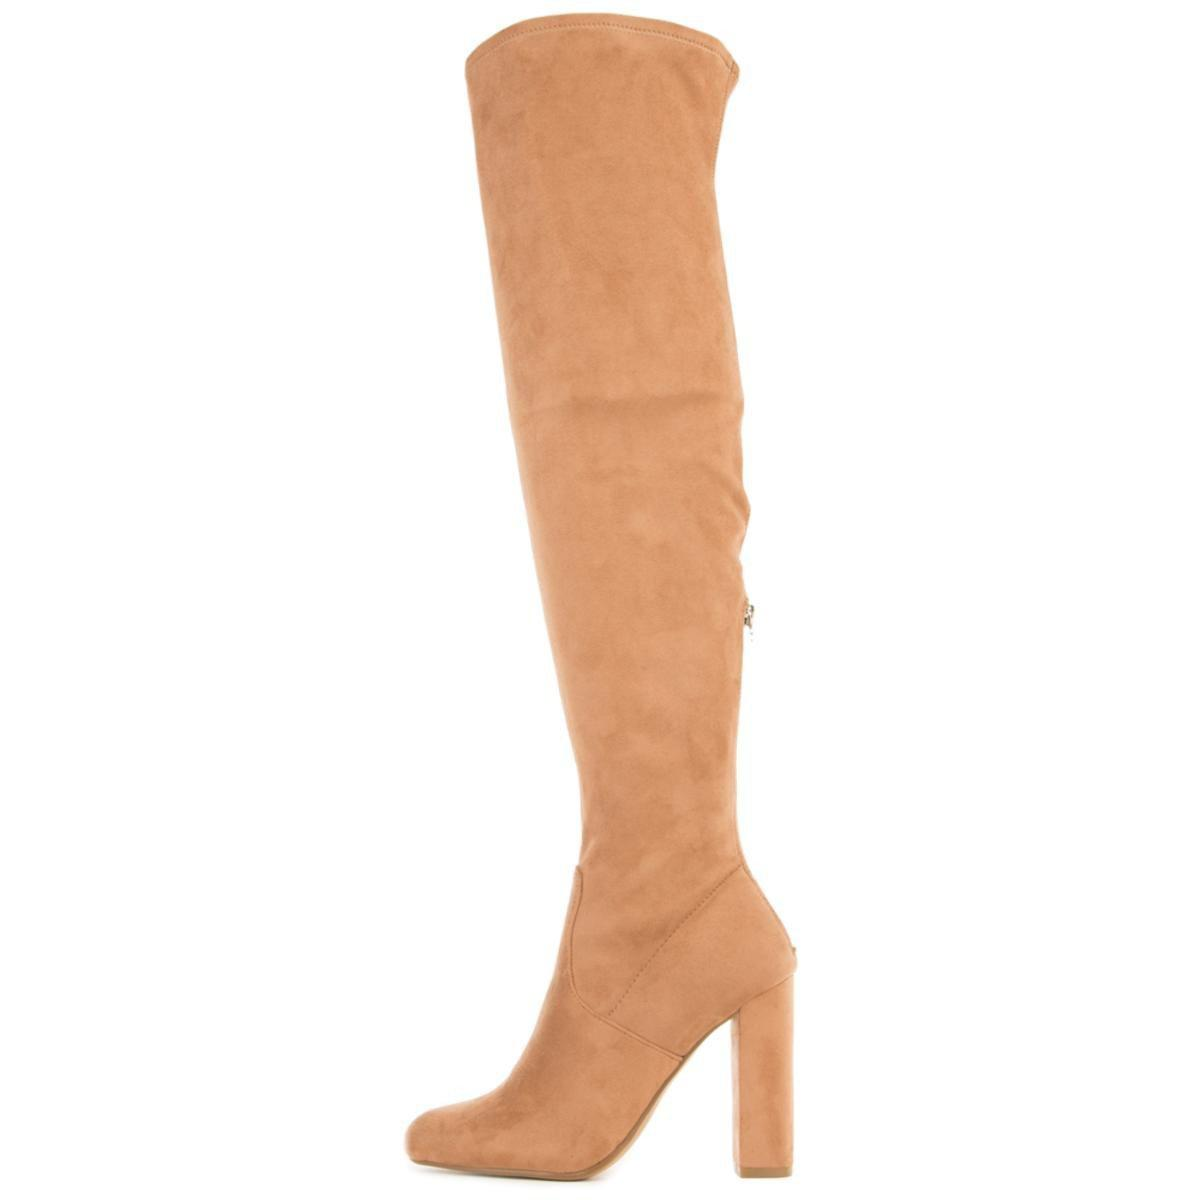 Steve Madden. Women's Natural Emotions Camel Thigh High Heeled Boots